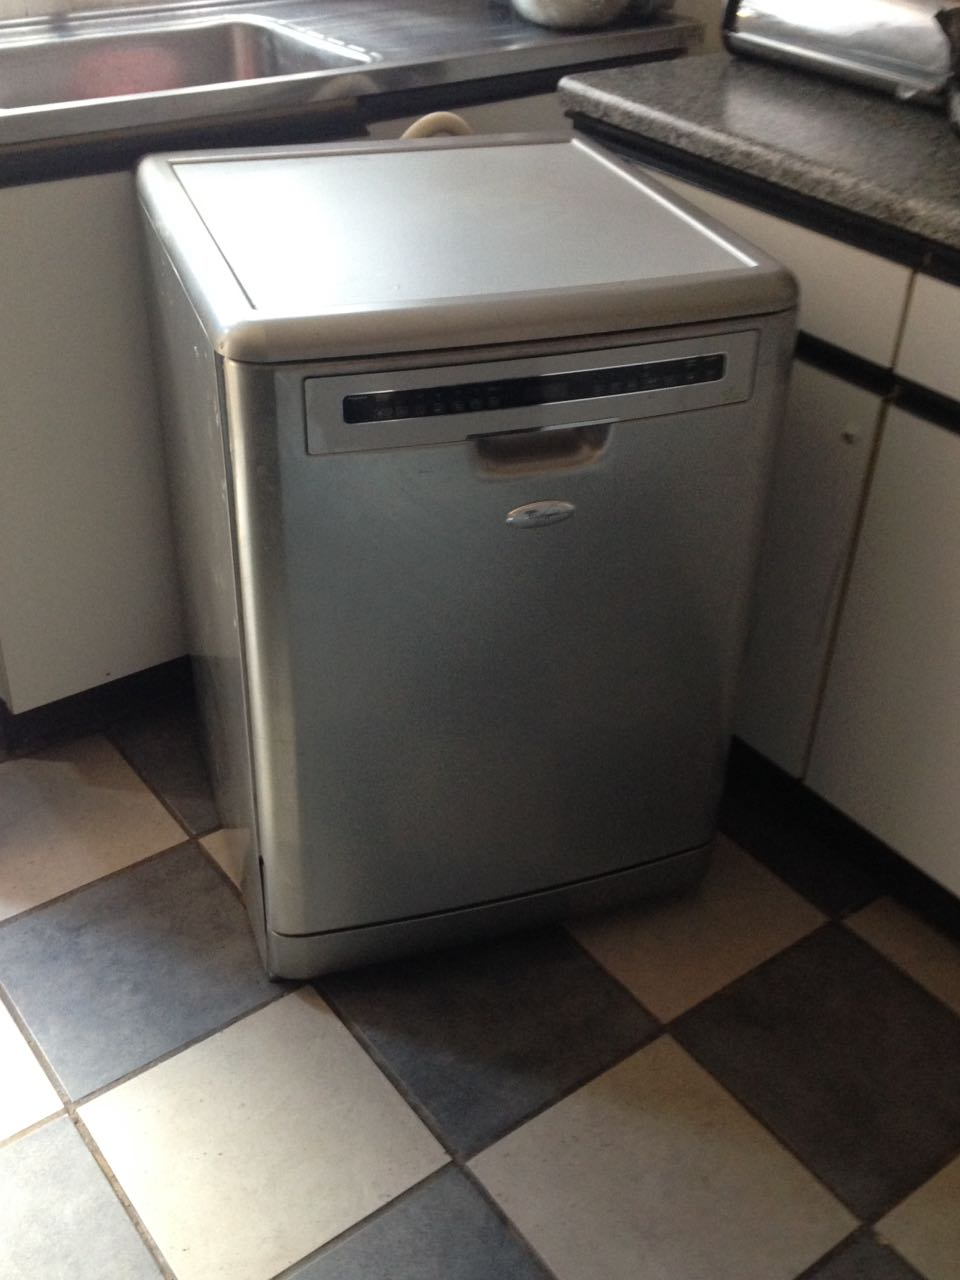 **PRICE REDUCED** Whirlpool adp 7955 touch dishwasher for sale